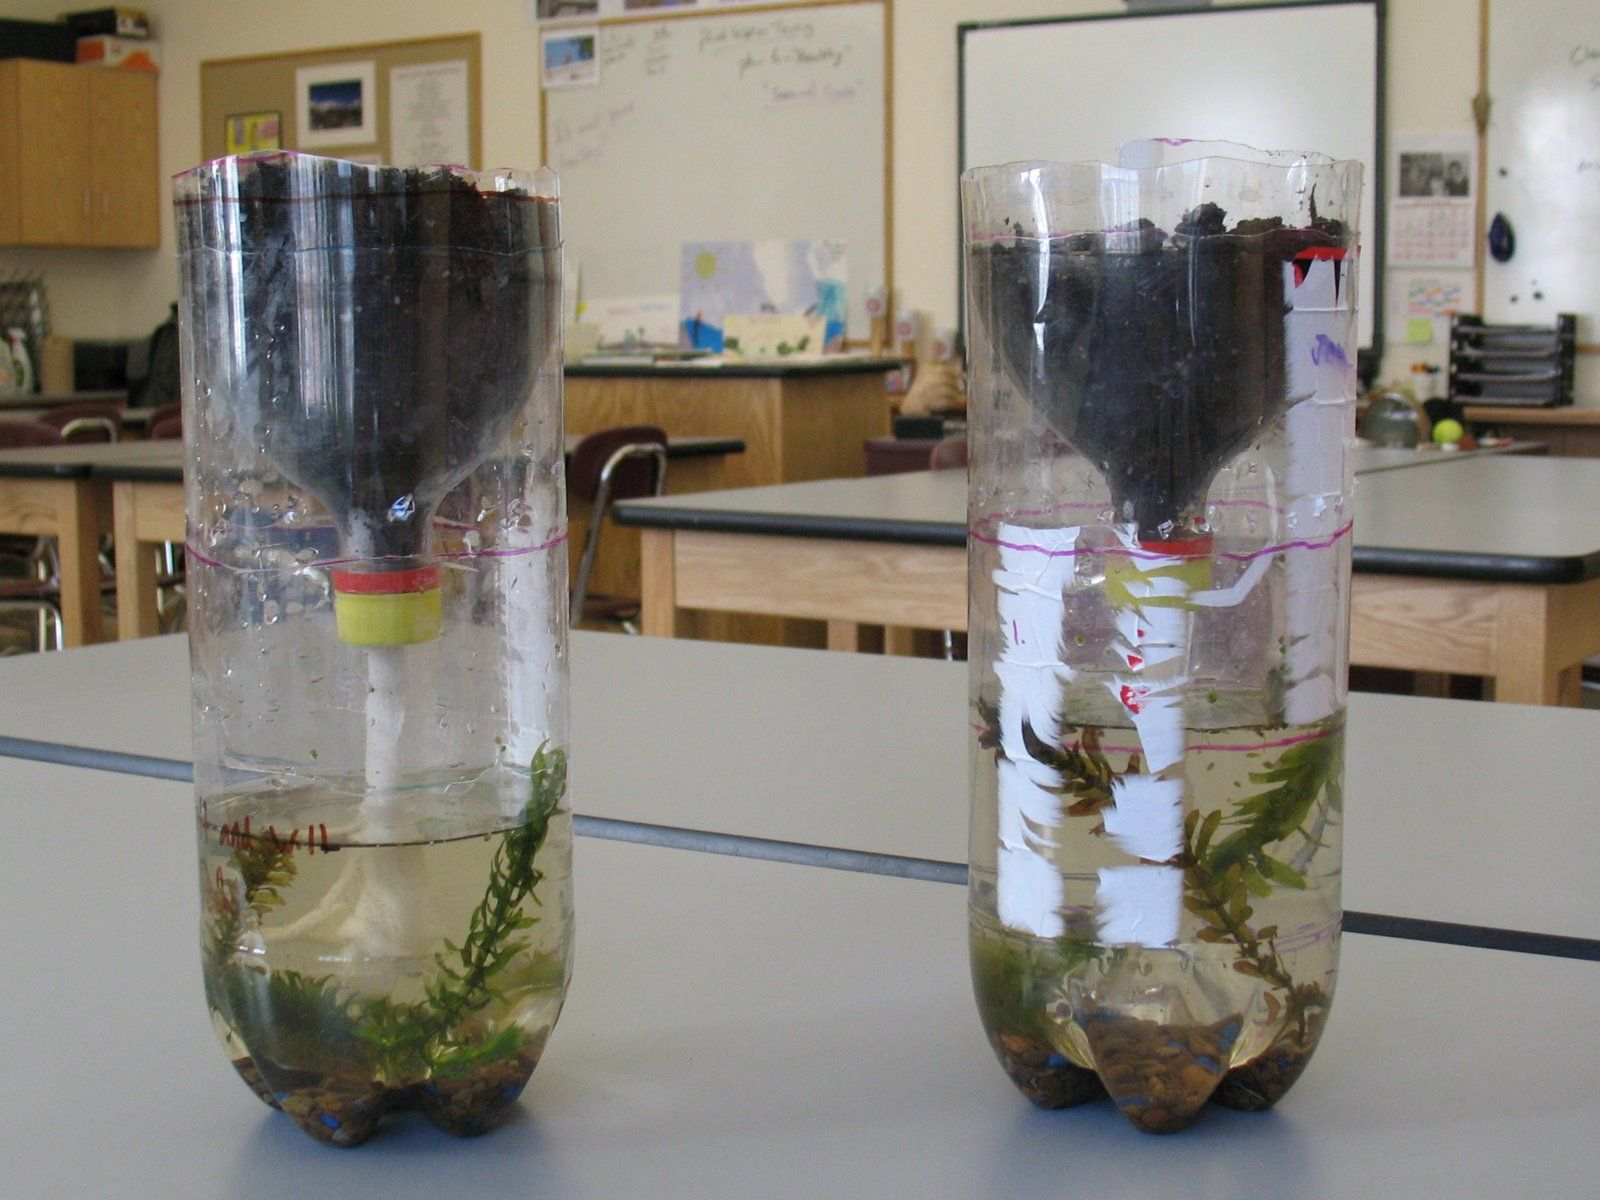 Students Experimenting With Ways To Build Ecosystems In A